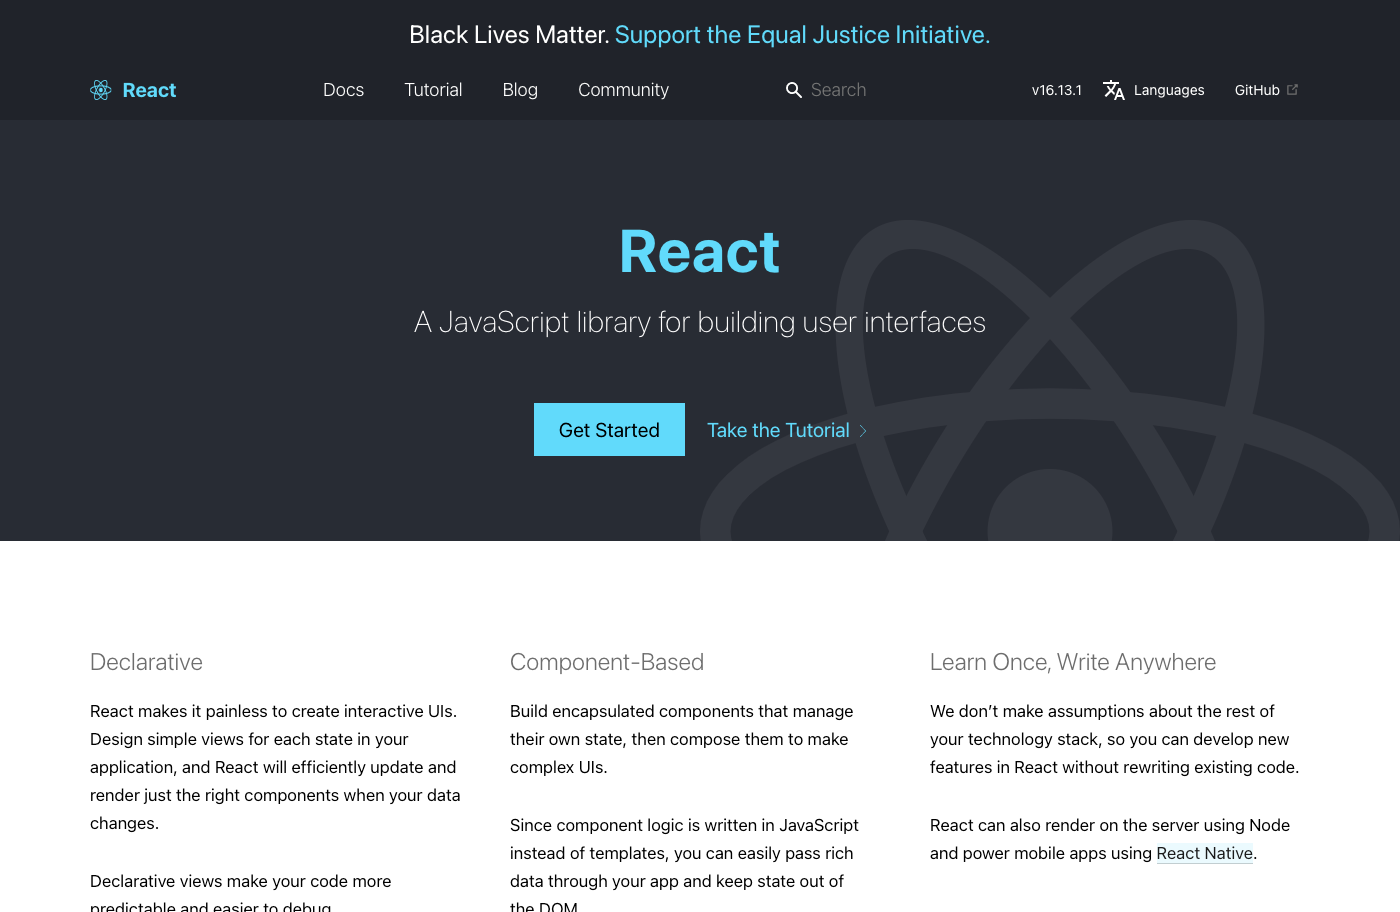 React - Start New Projects Faster